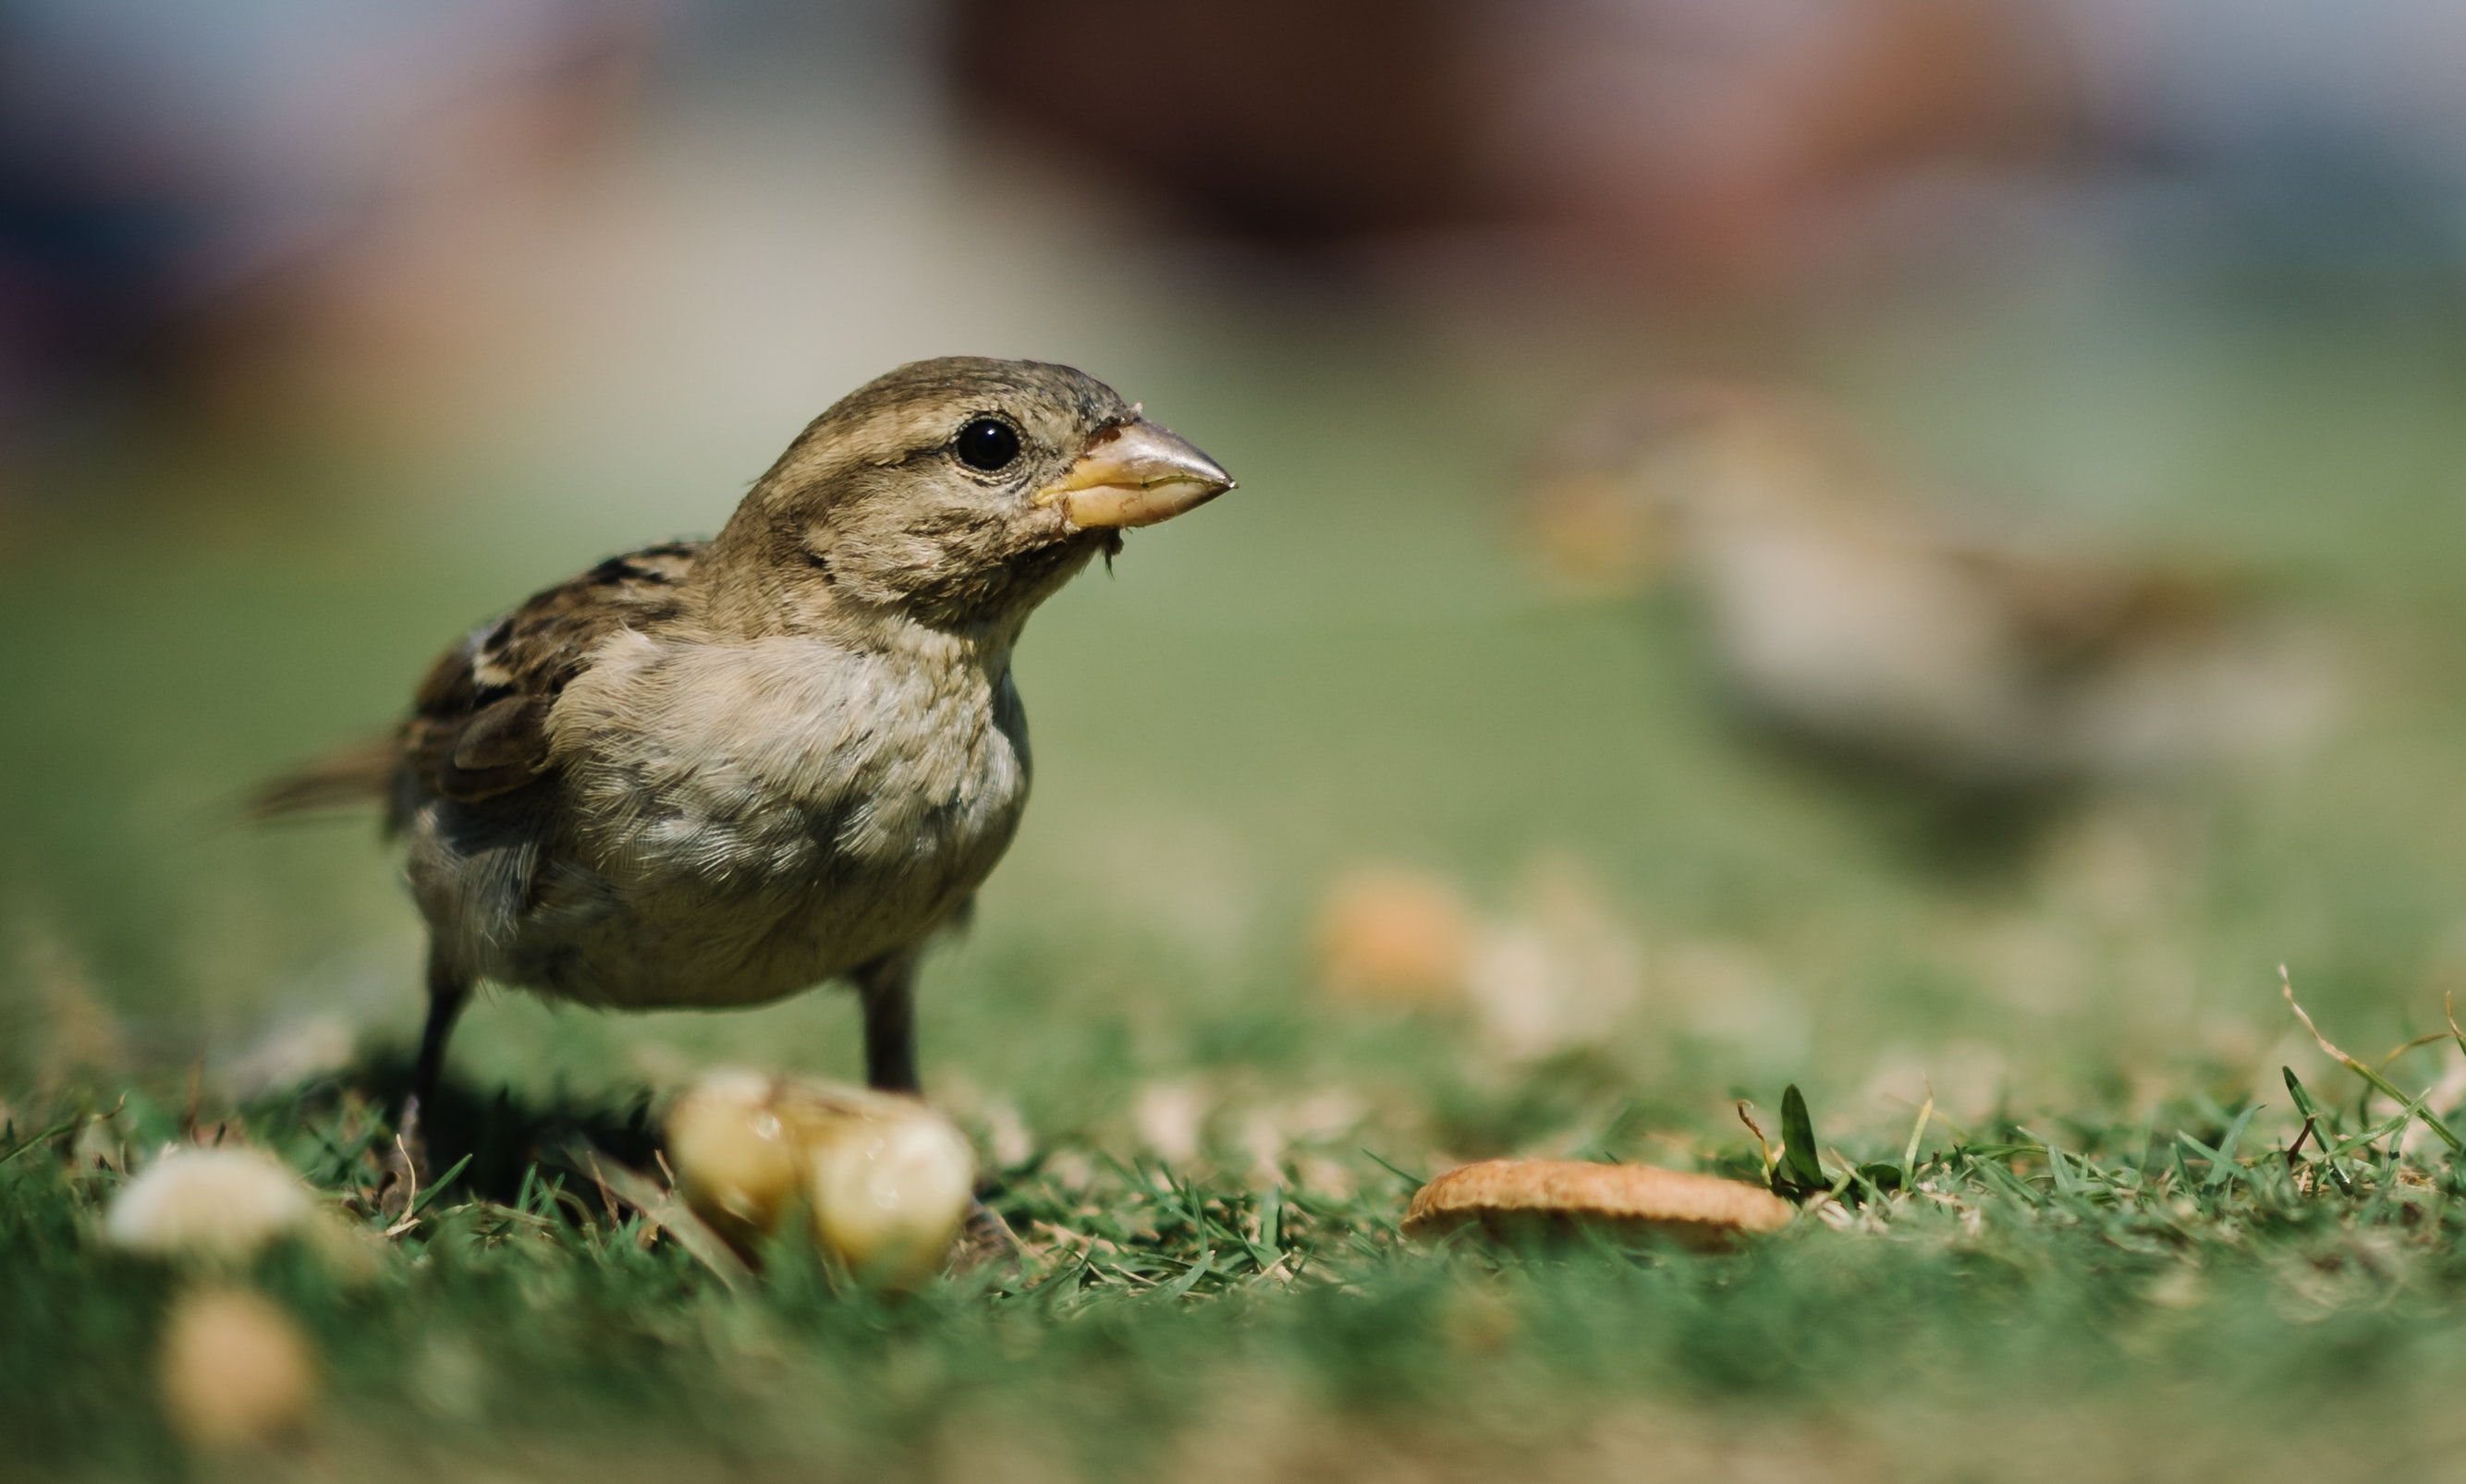 closeup photo of brown bird on green grass